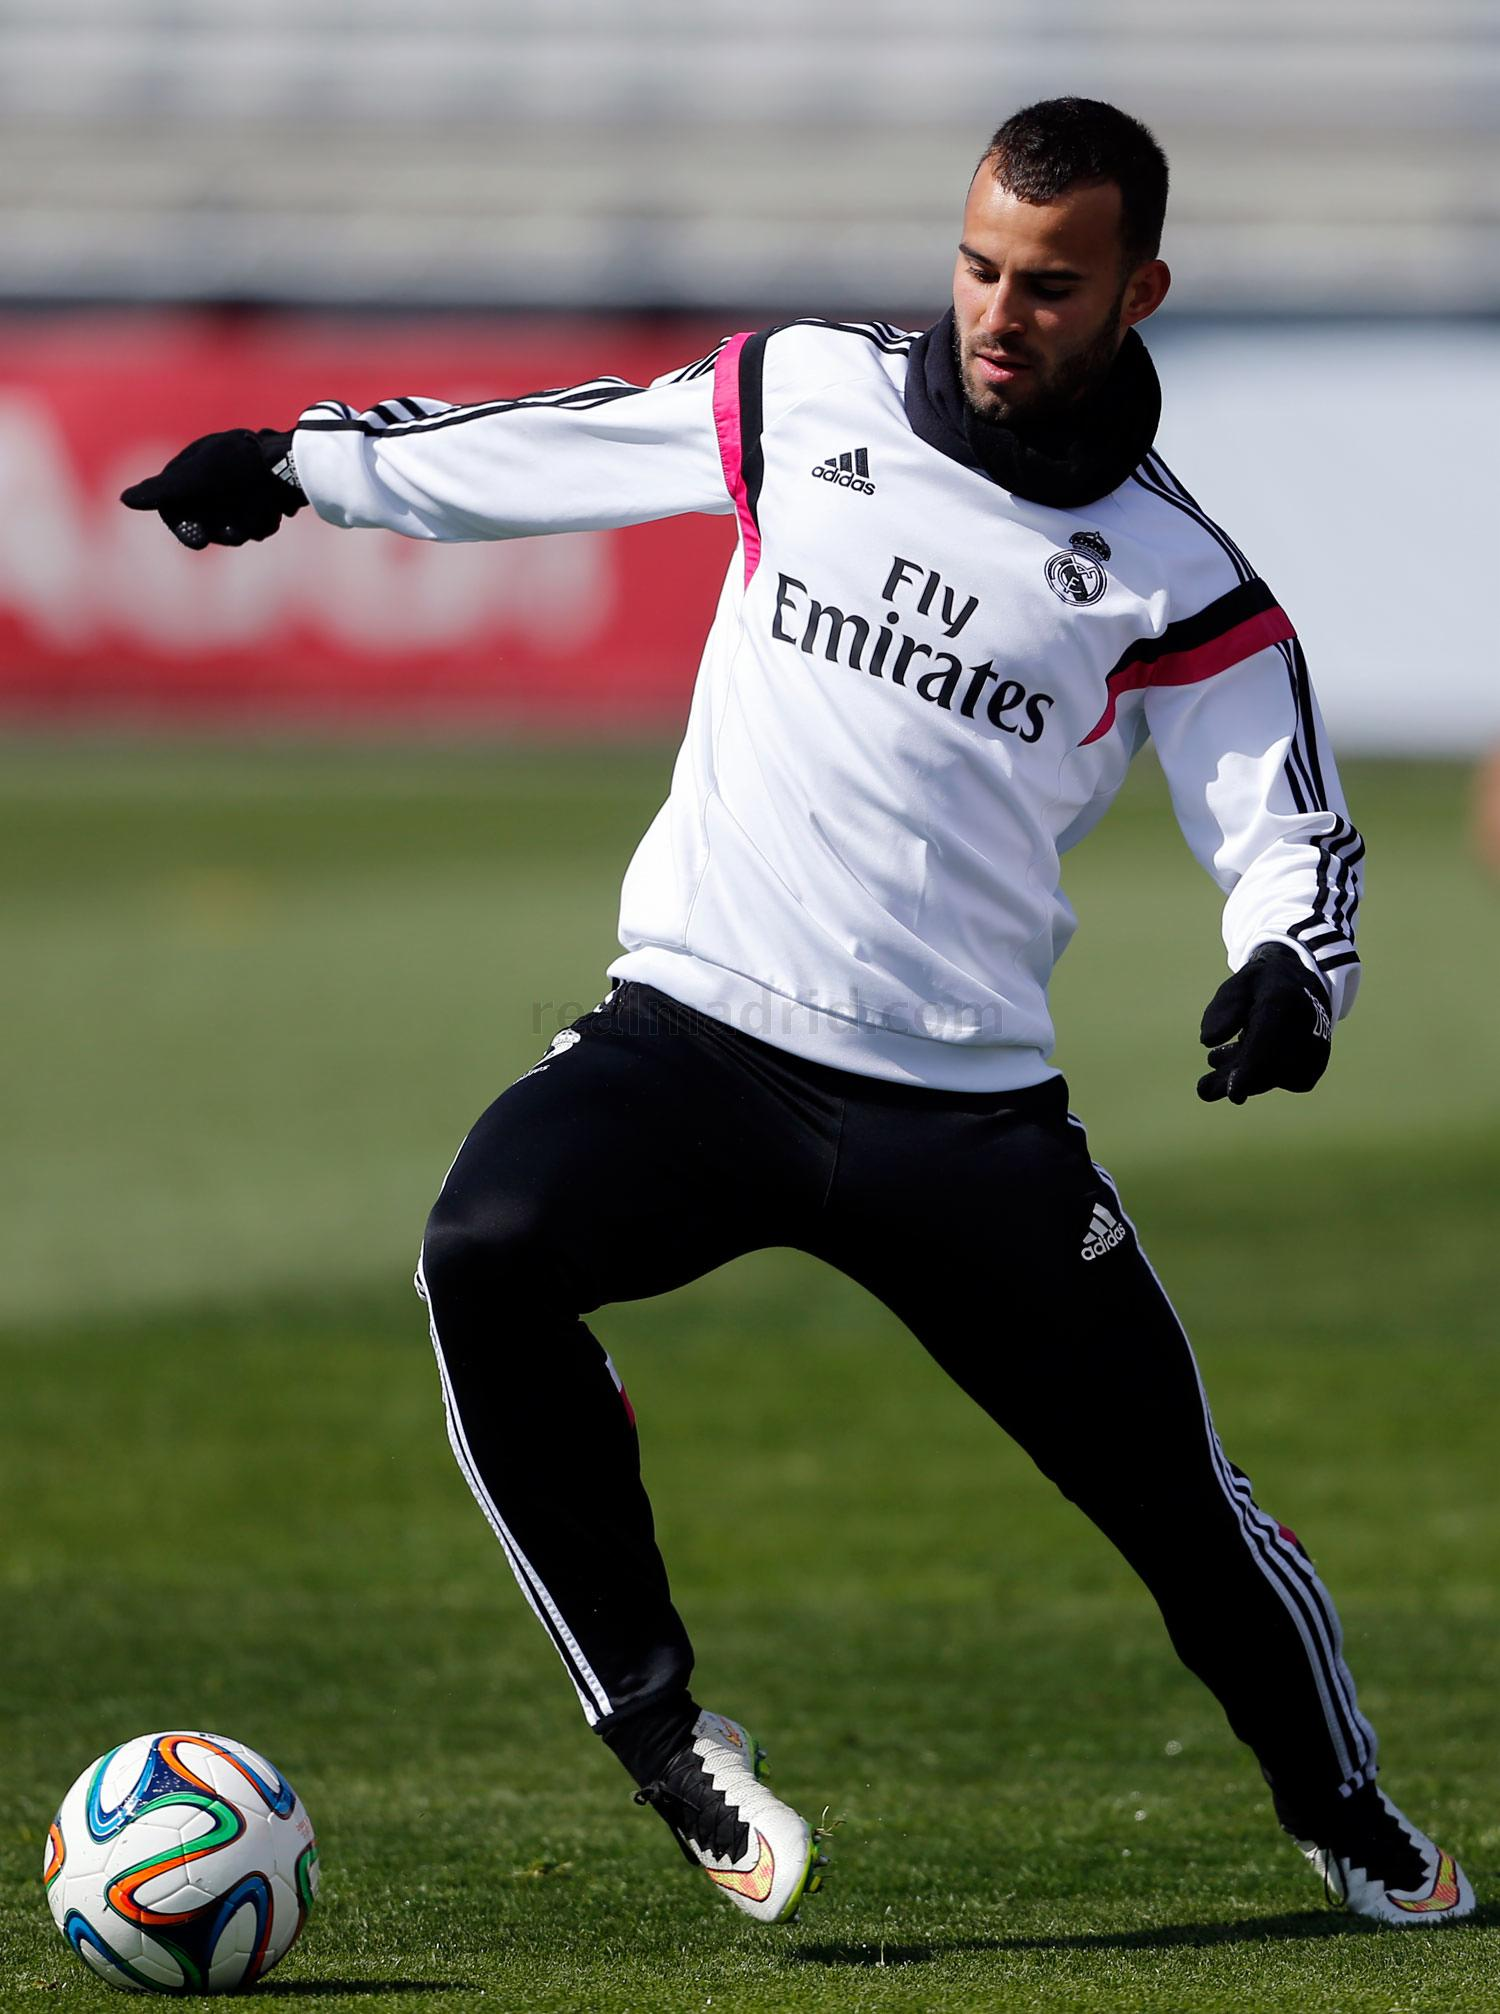 Real Madrid - Entrenamiento del Real Madrid - 25-03-2015